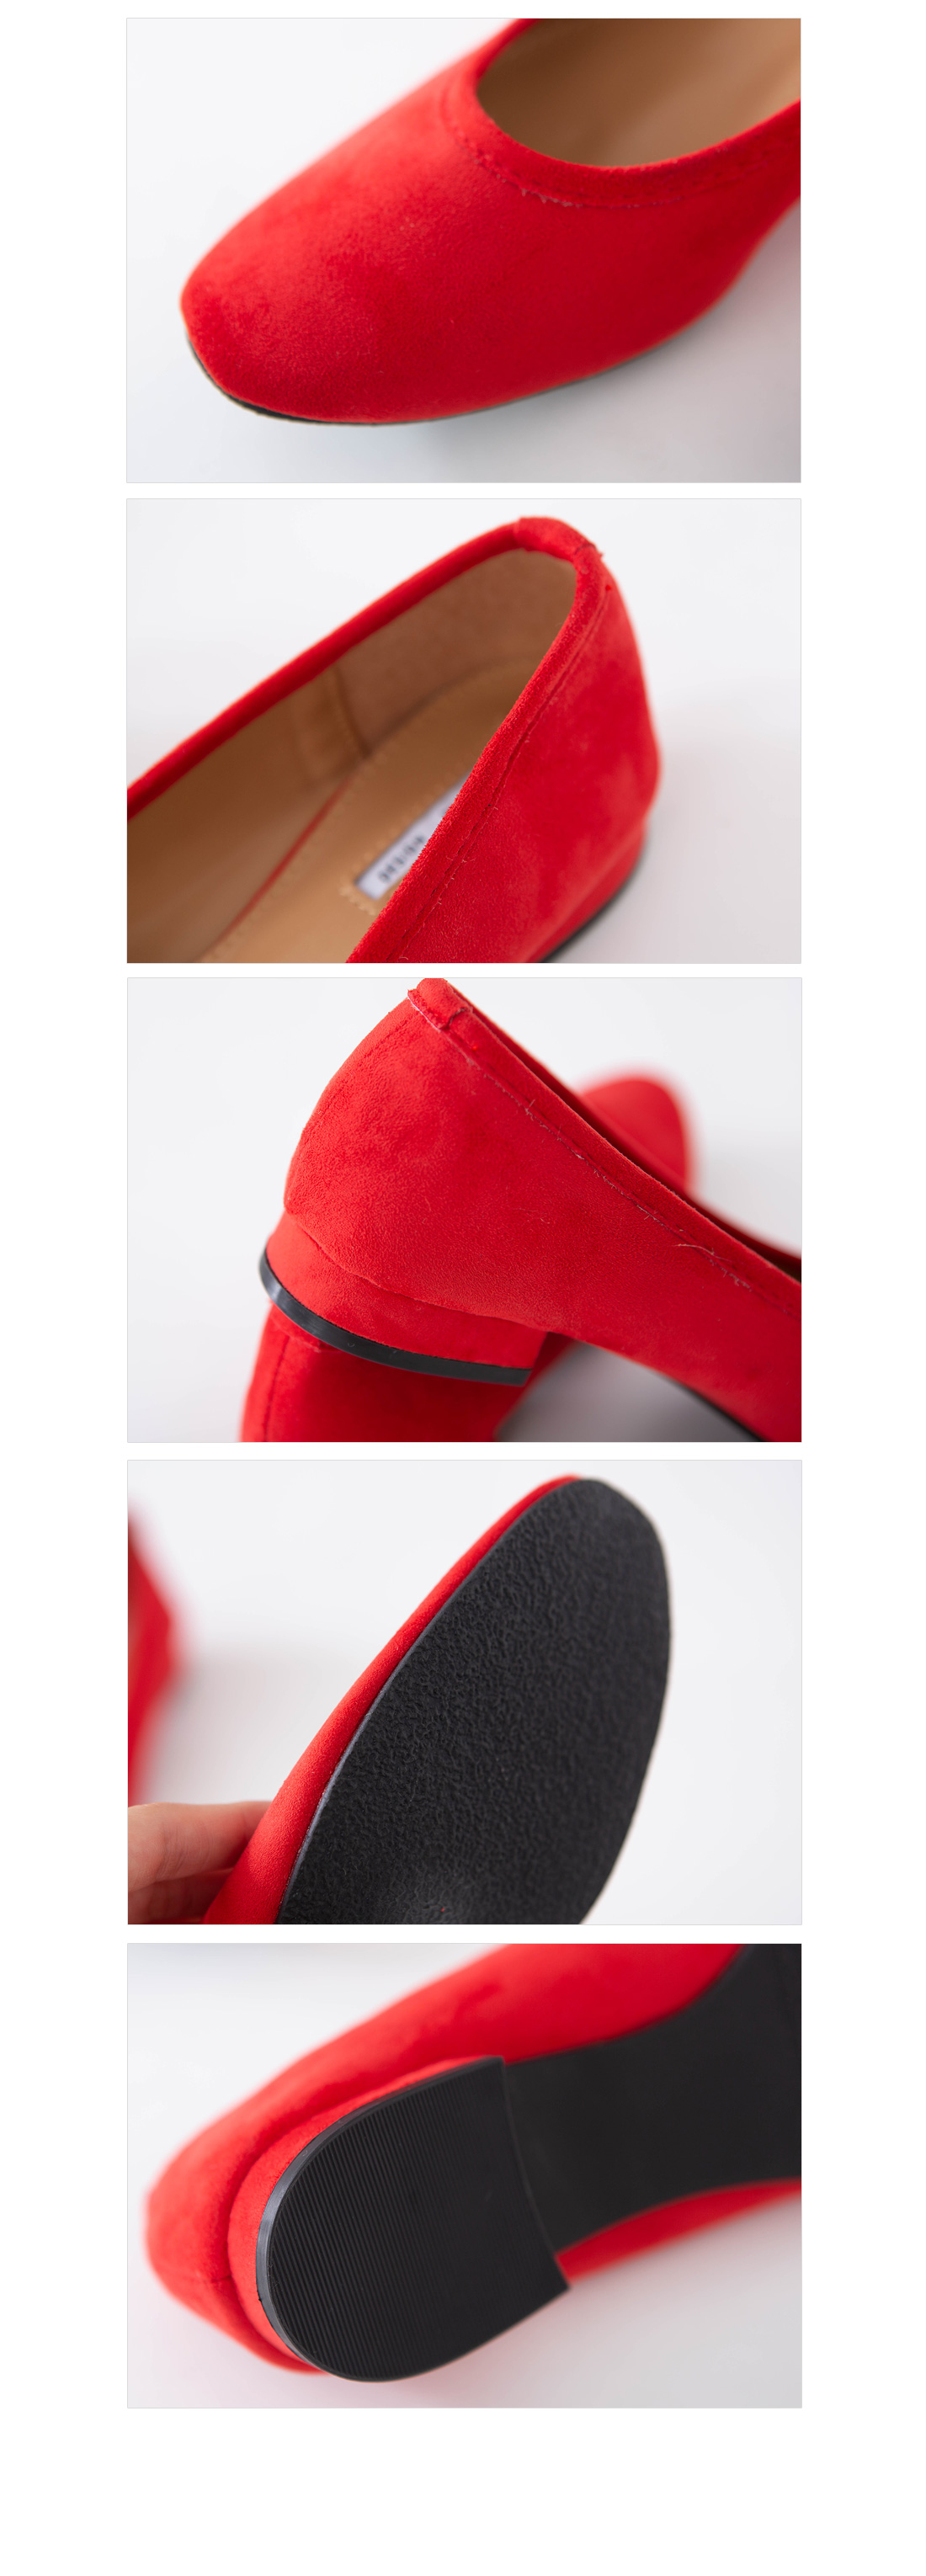 Suede pumps loafers #85507